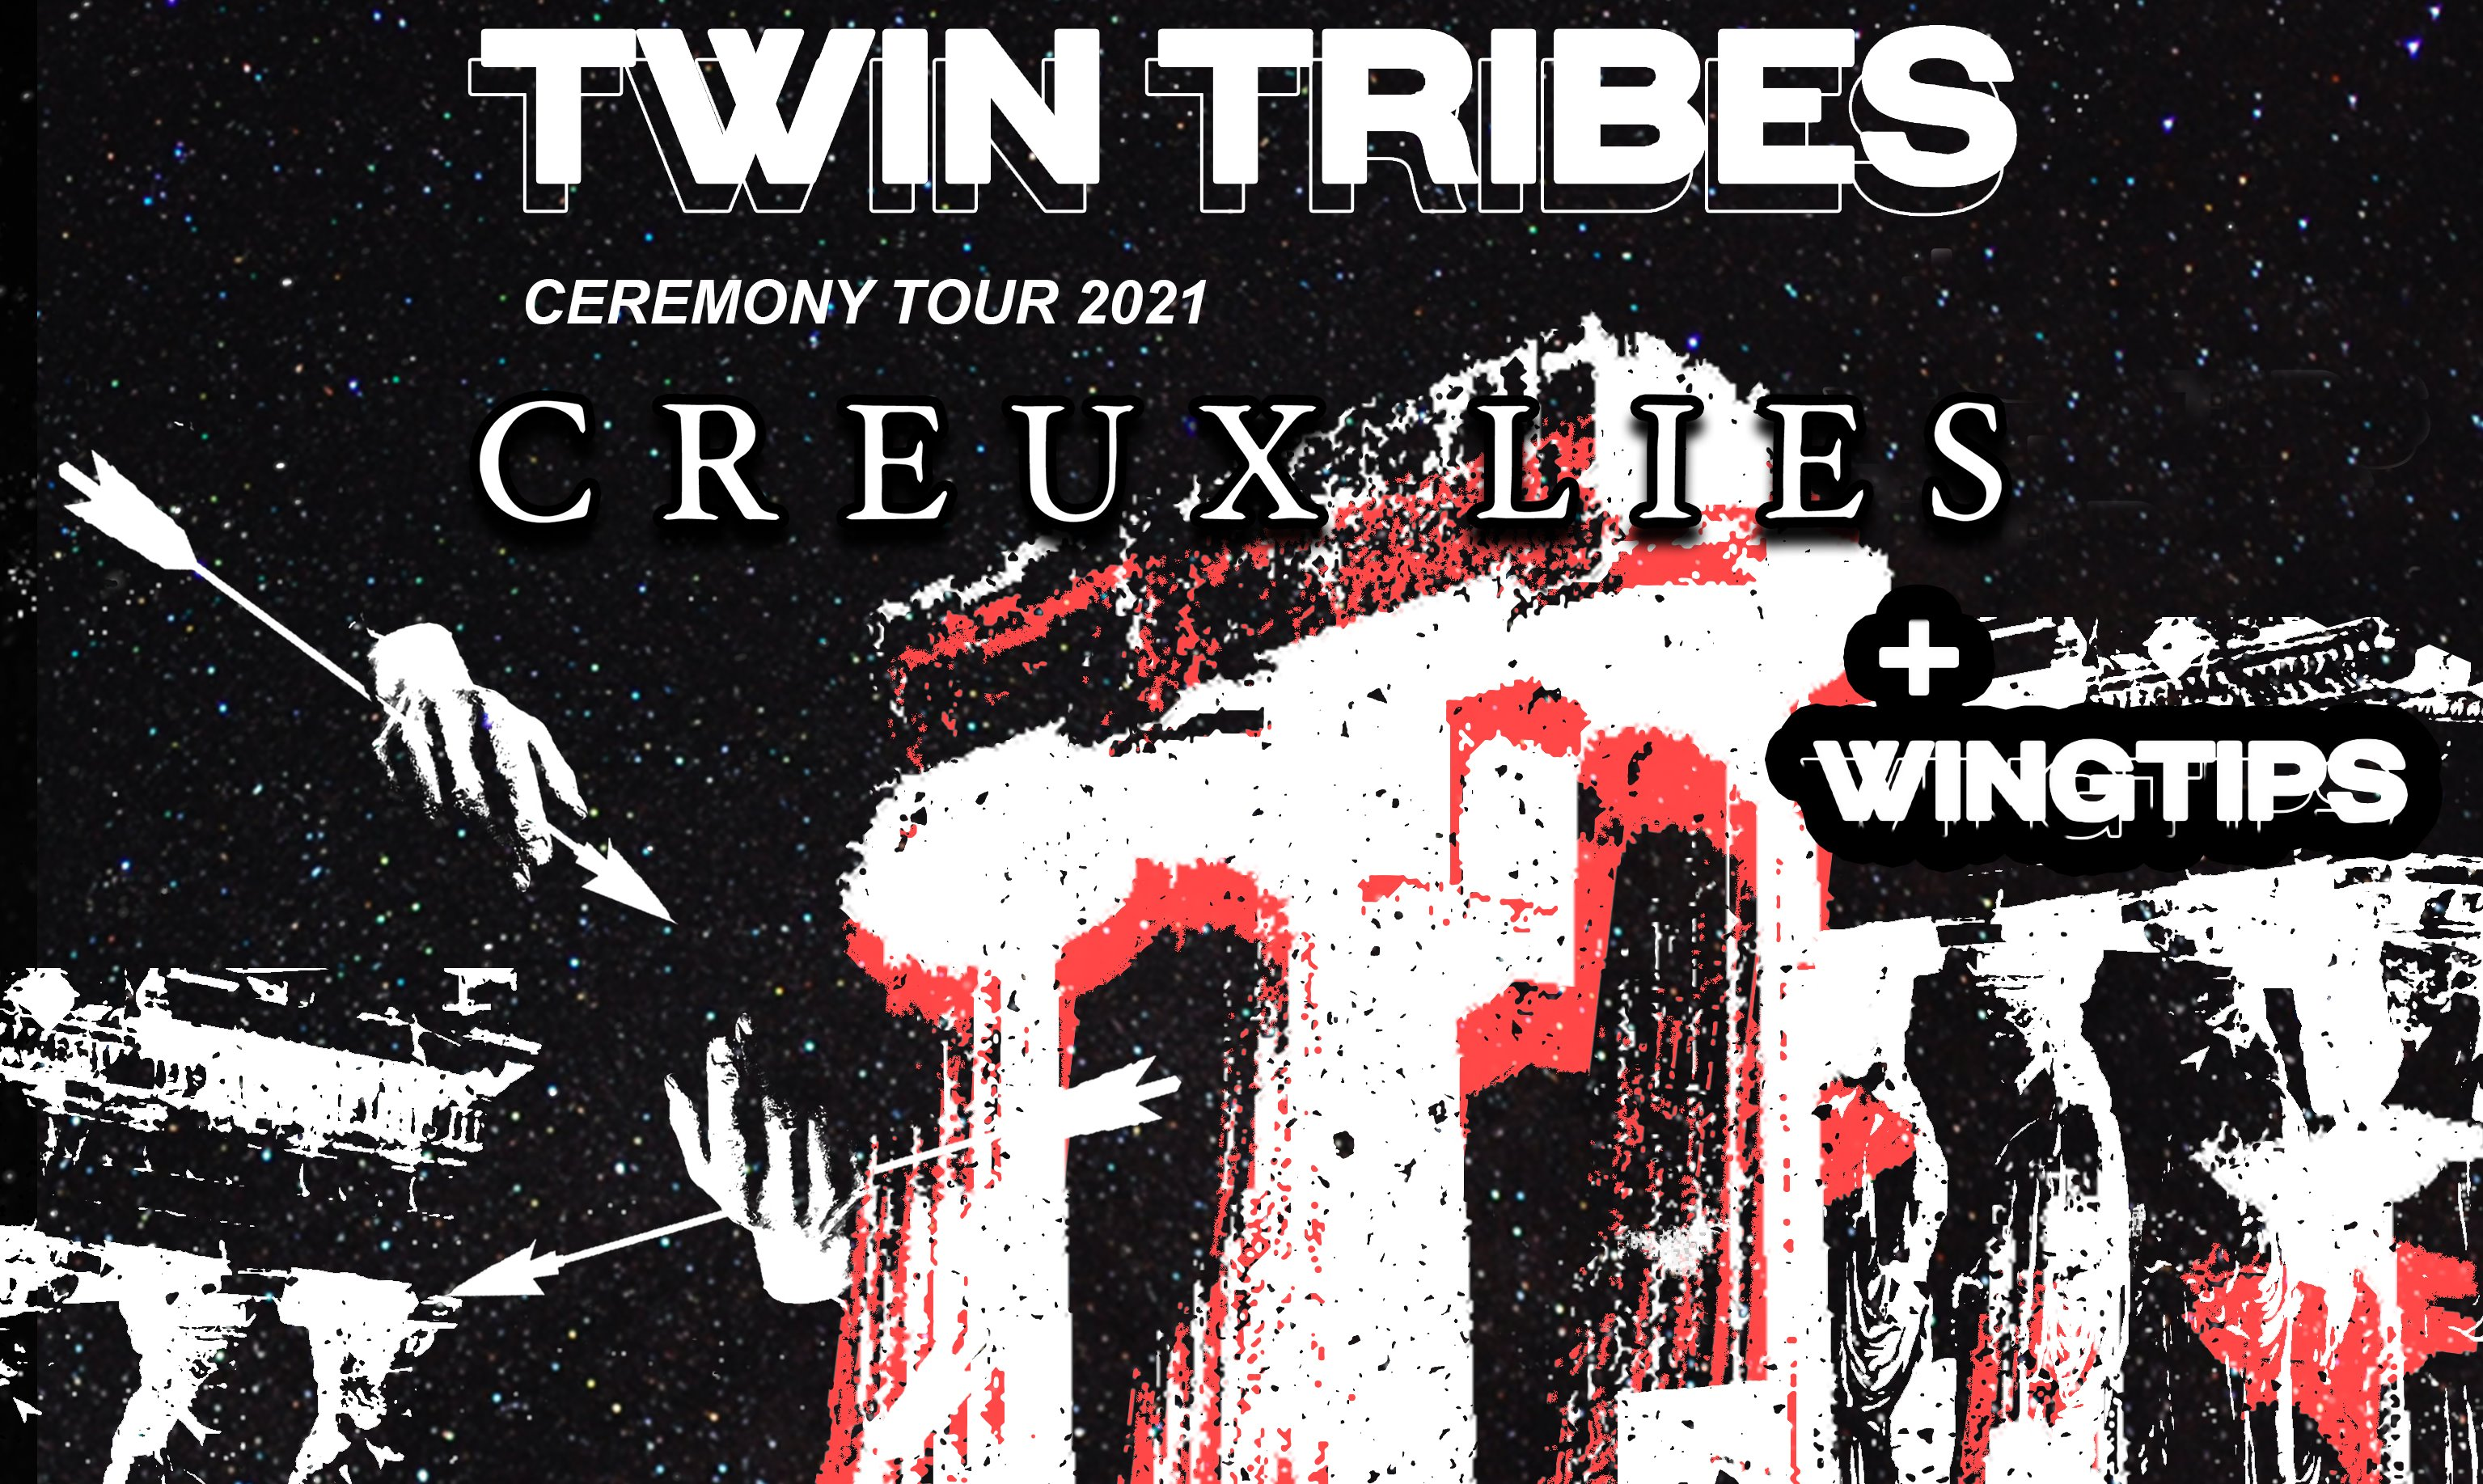 Creux Lies & Twin Tribes